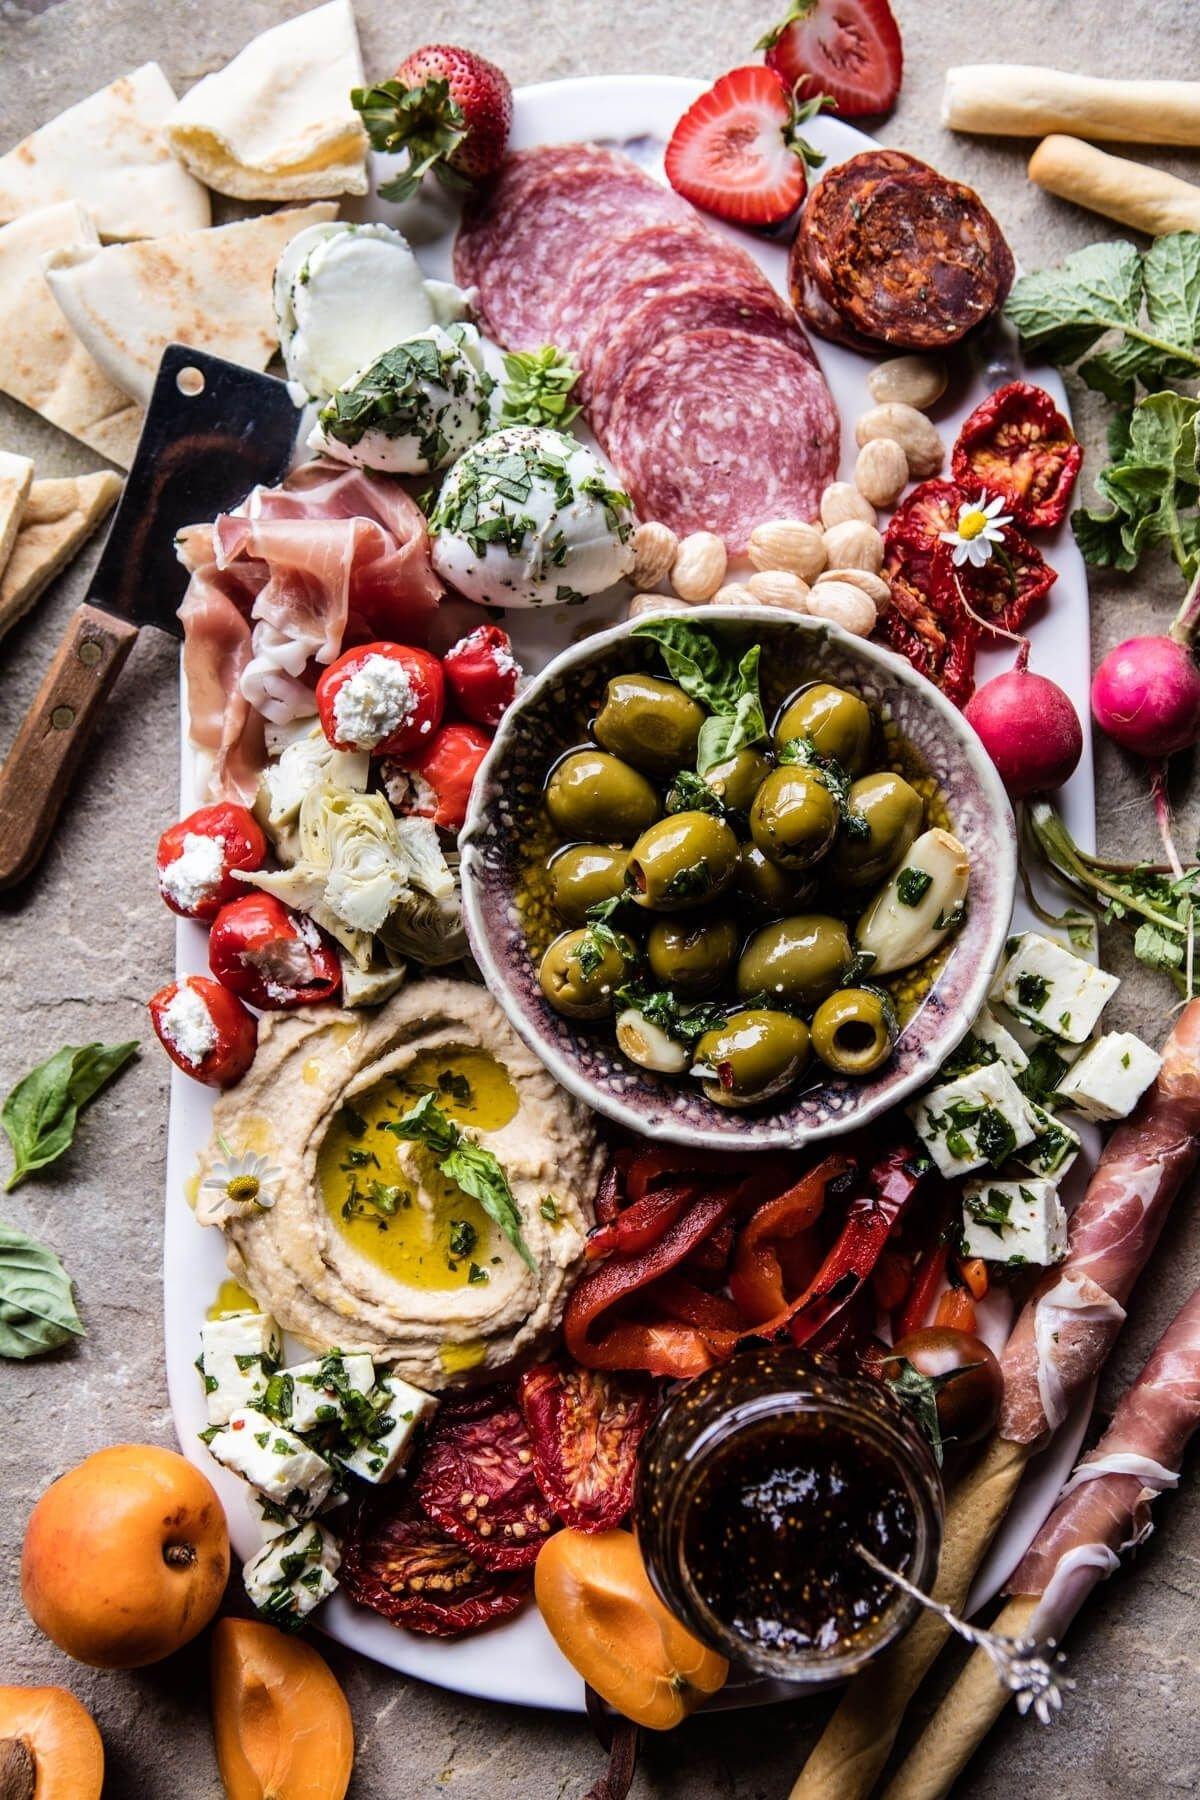 10 Gorgeous Cheese And Meat Platter Ideas 22 of my favorite super bowl recipes antipasto platter antipasto 2020